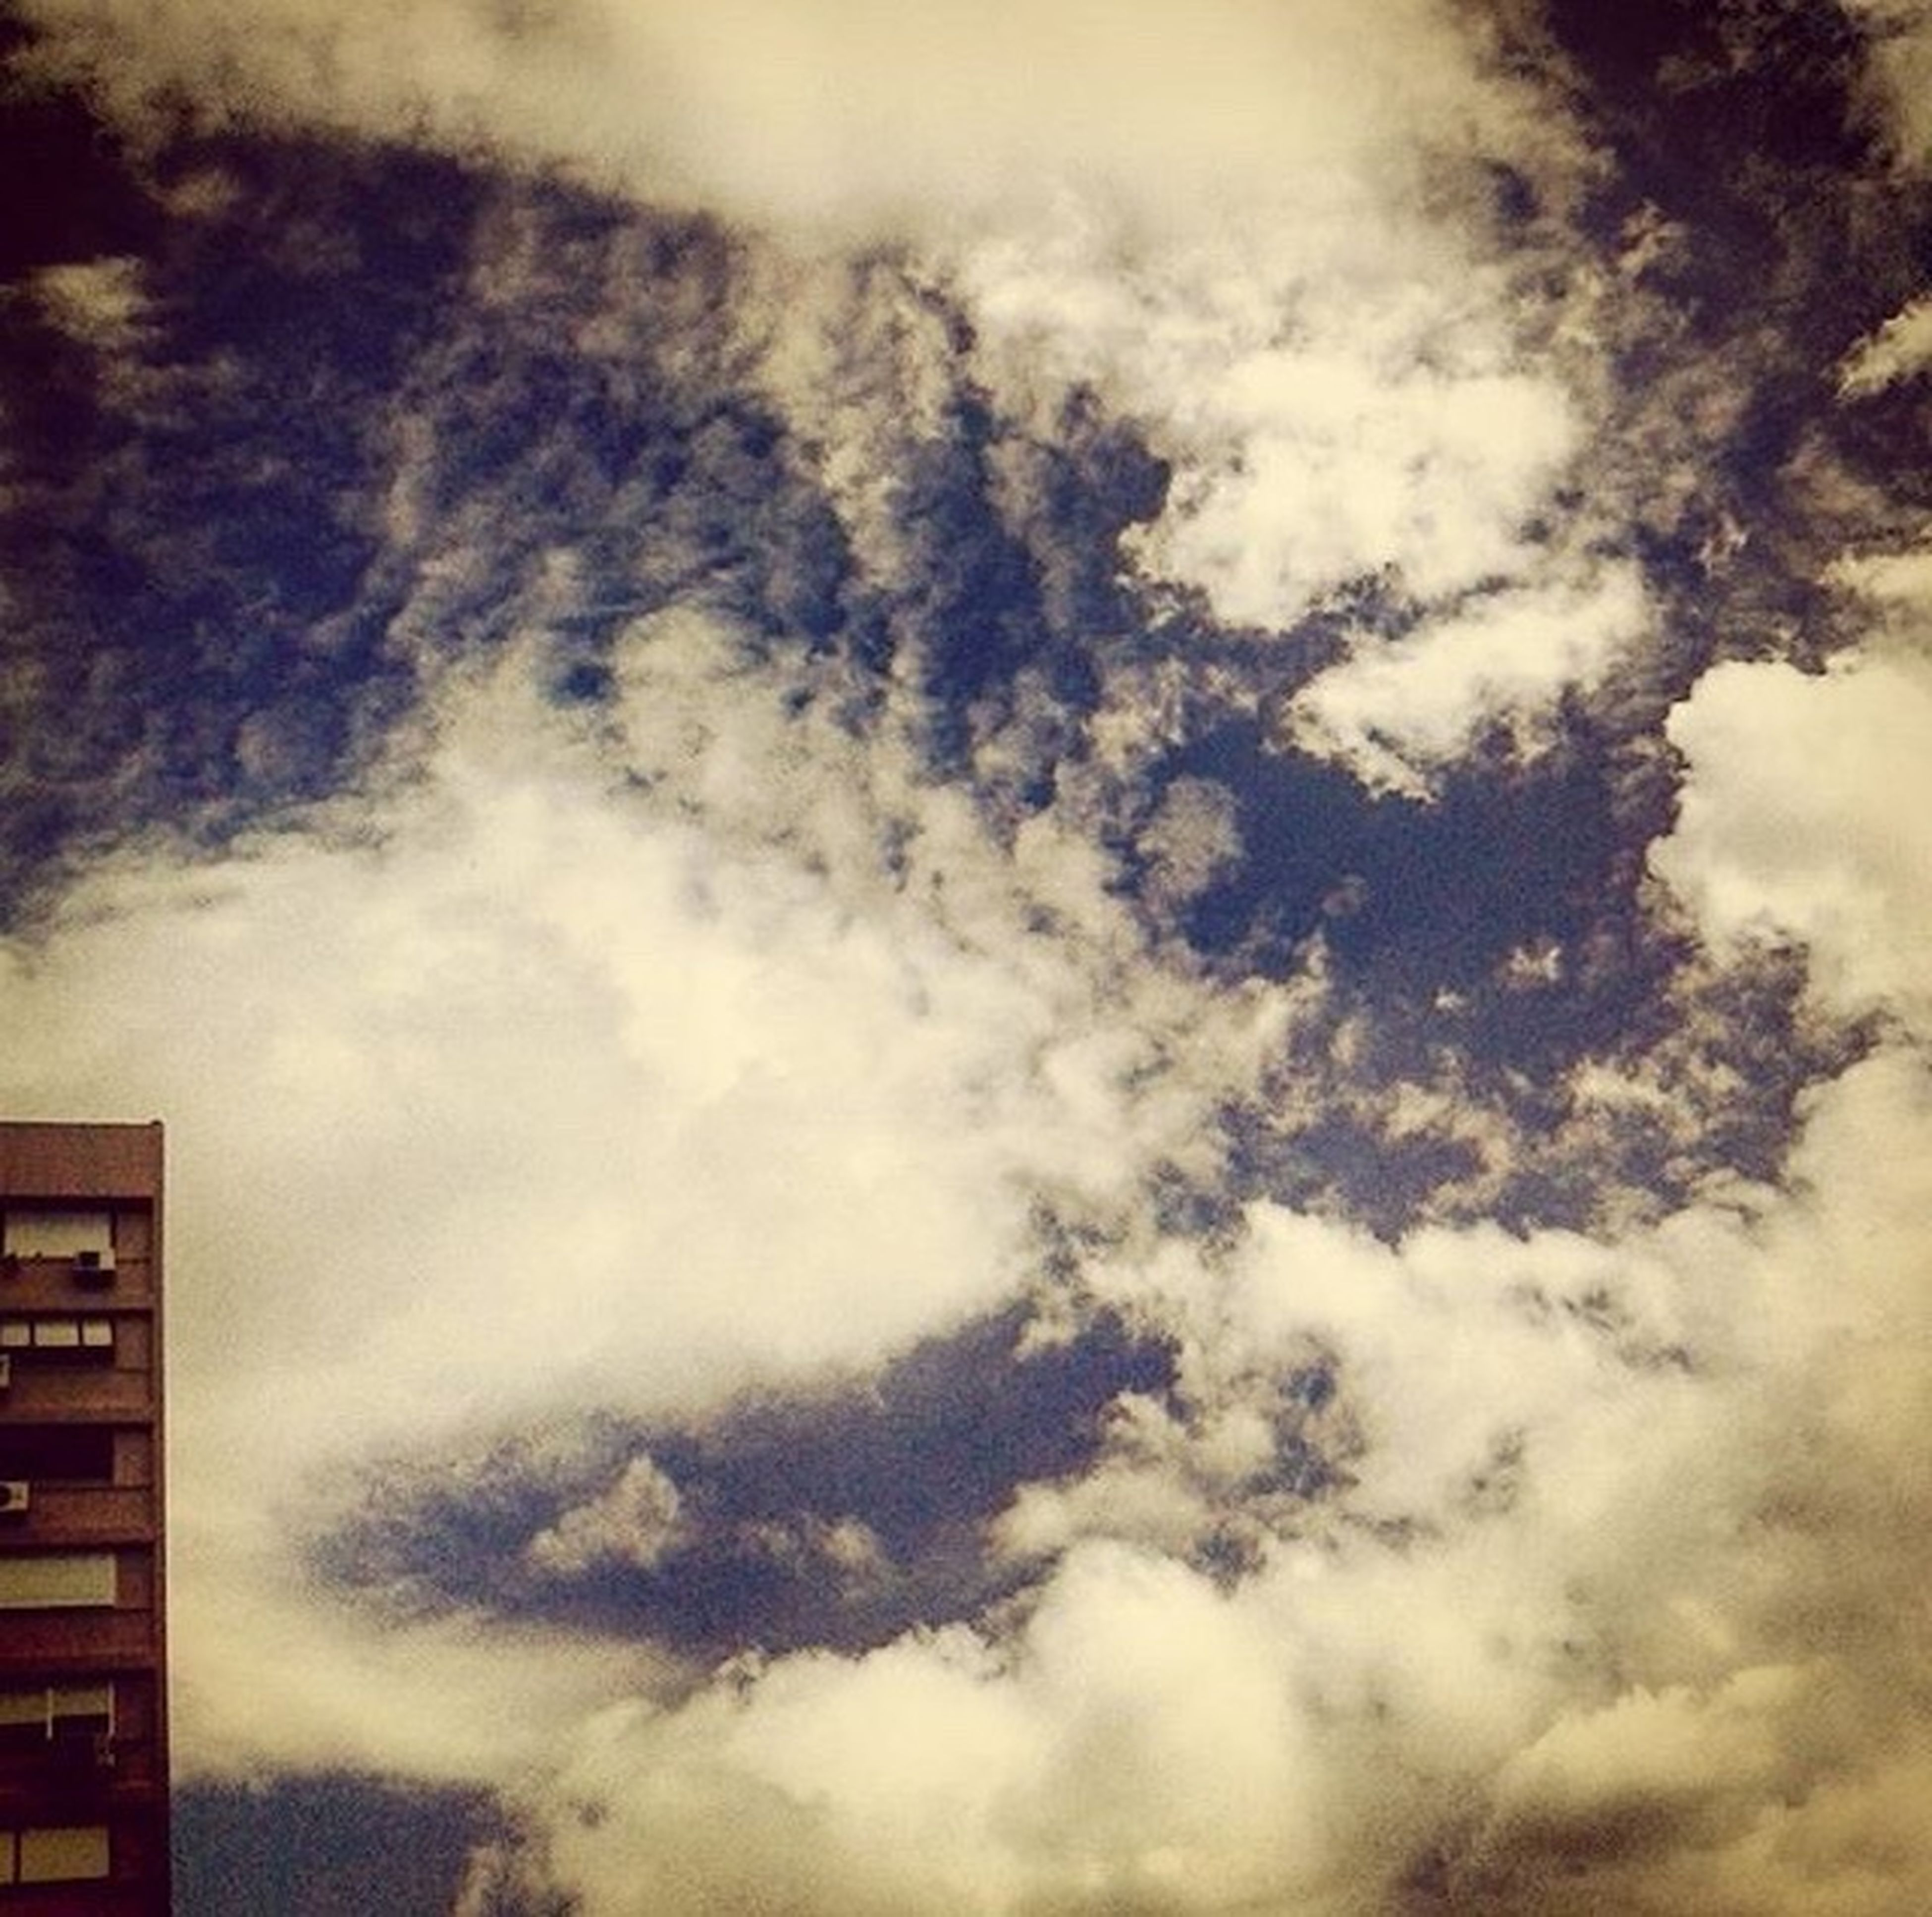 sky, cloud - sky, low angle view, cloudy, weather, beauty in nature, cloudscape, nature, scenics, tranquility, sky only, overcast, cloud, backgrounds, tranquil scene, outdoors, storm cloud, no people, idyllic, dramatic sky